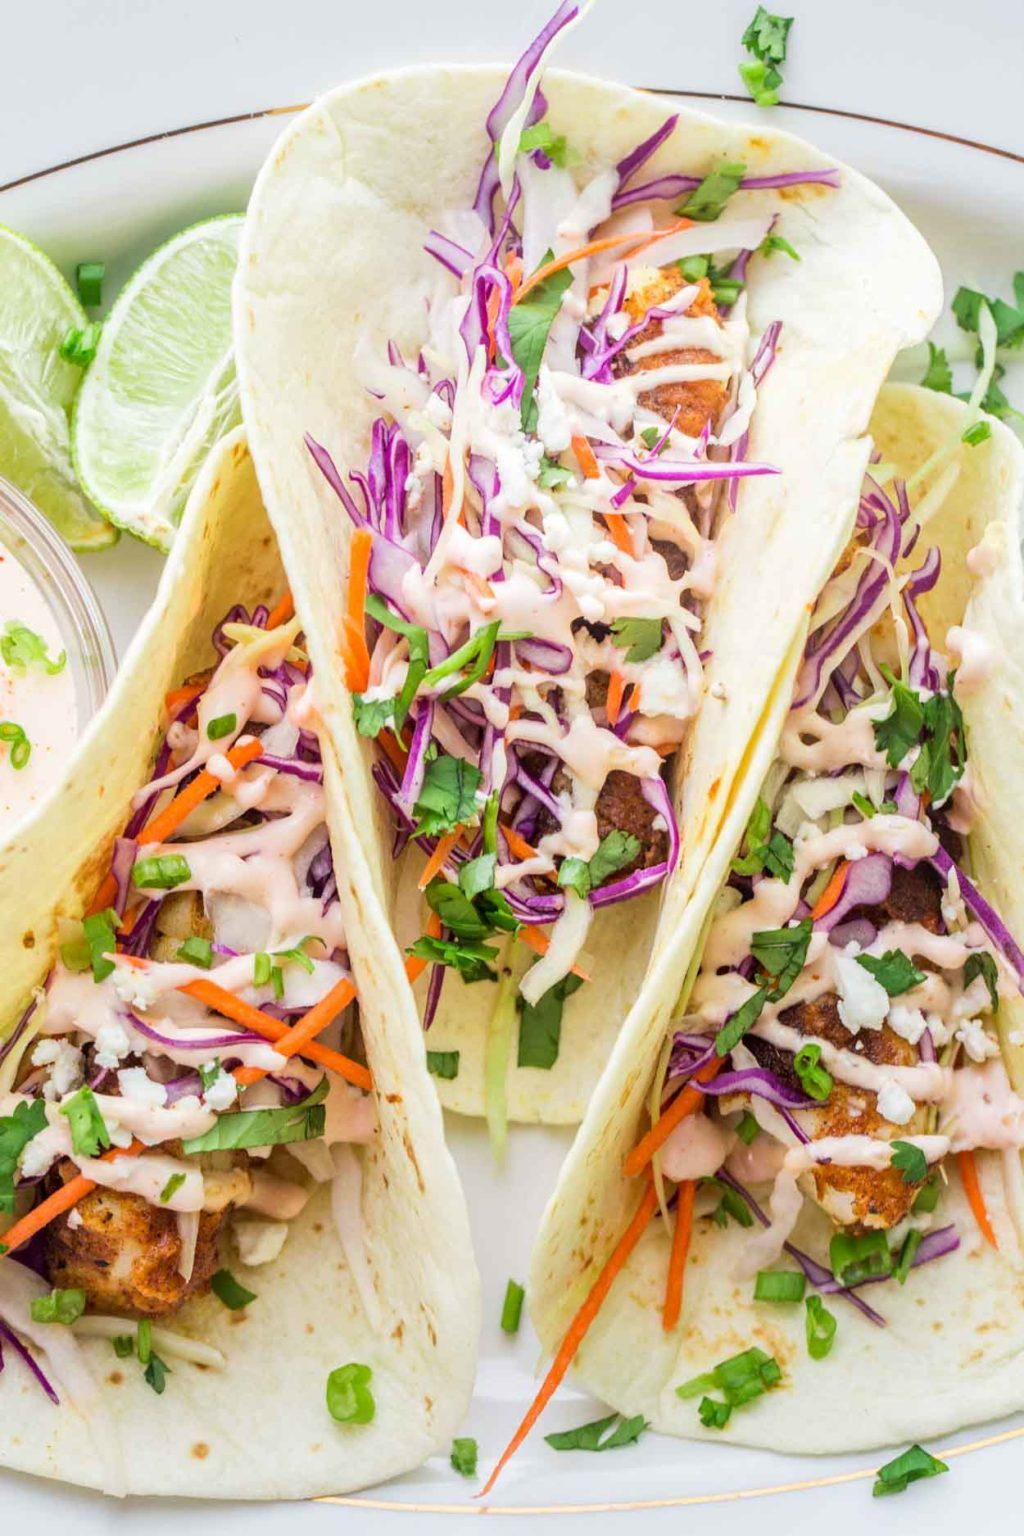 The Best Fish Tacos Recipe Ready In Just 20 Ninutes Homemade Cabbage Fish Slaw And A Spicy Fish Ta In 2020 Easy Fish Tacos Best Fish Taco Recipe Easy Fish Taco Recipe